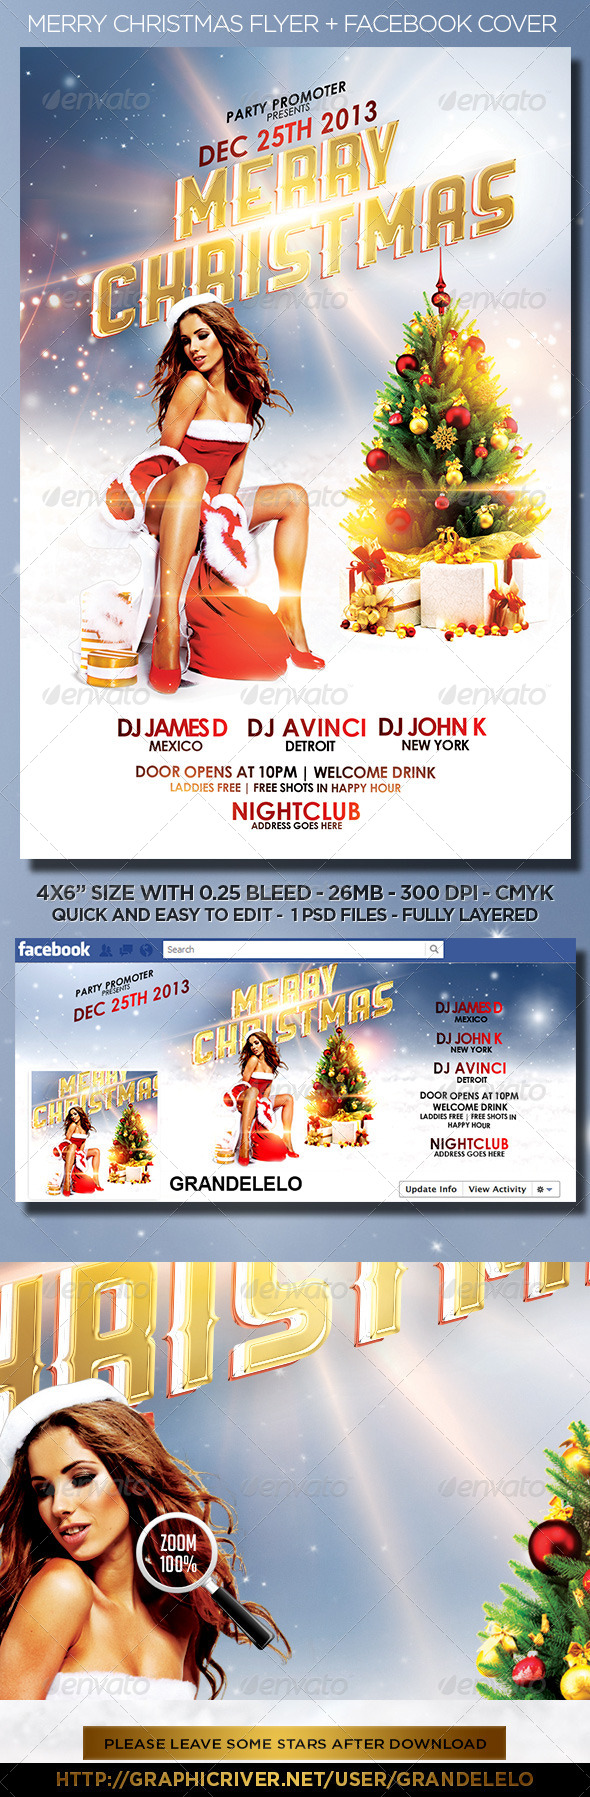 Merry Christmas Flyer + FB Cover  - Holidays Events